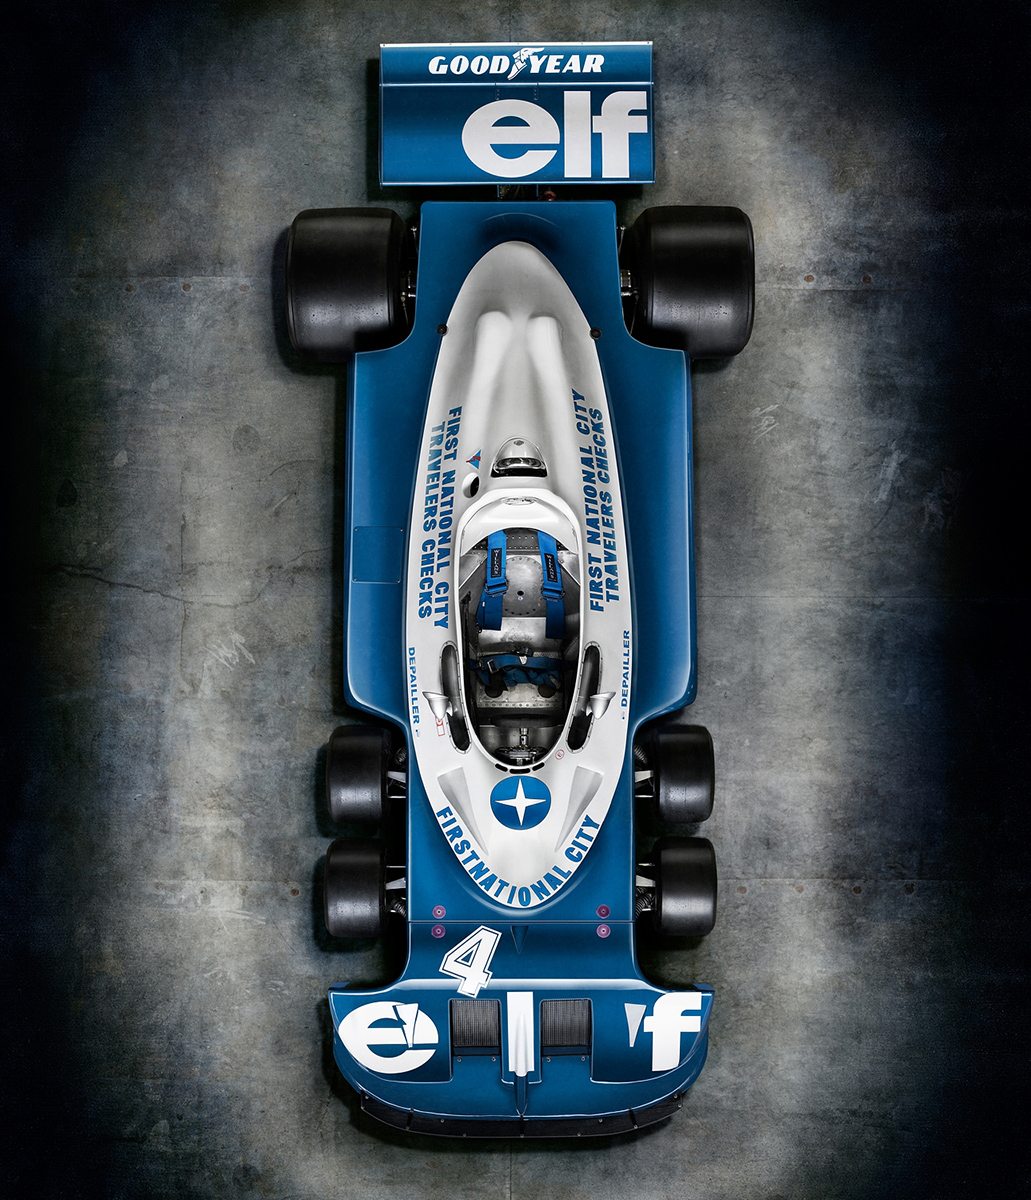 Formula 1 Race Car Commercial Photography campaign